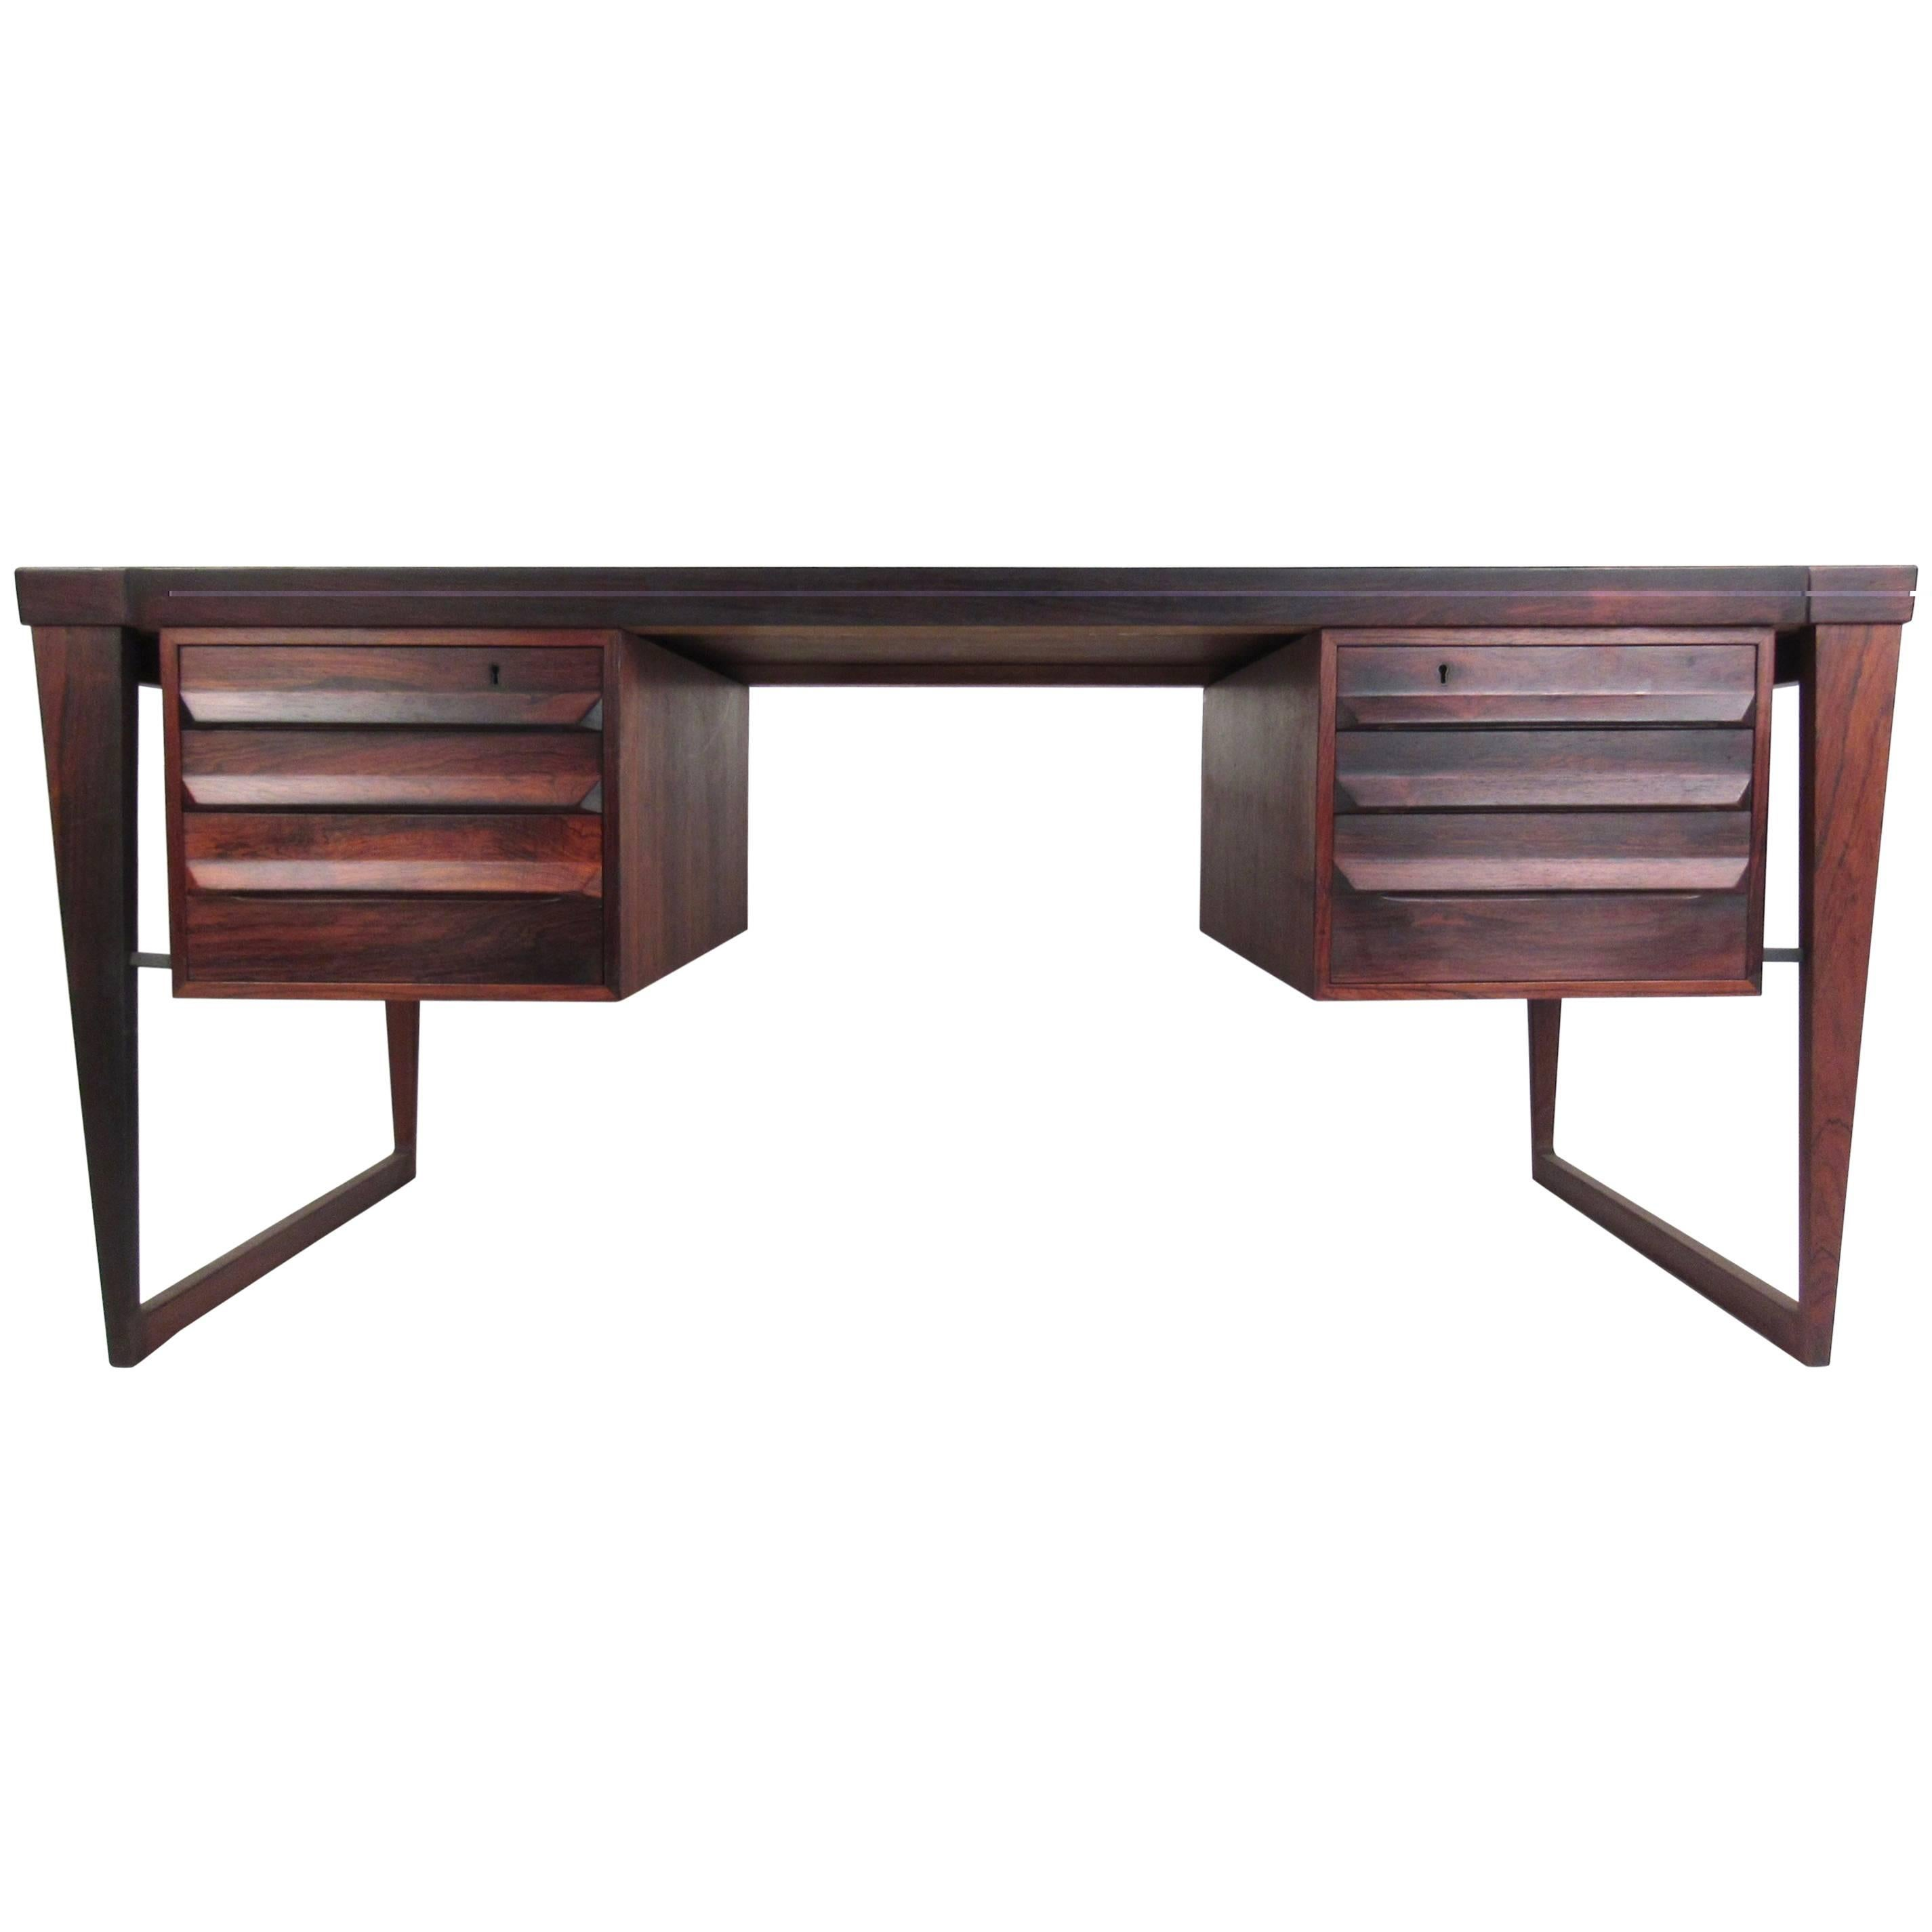 Mid-Century Modern Rosewood Executive Desk by Kai Kristiansen